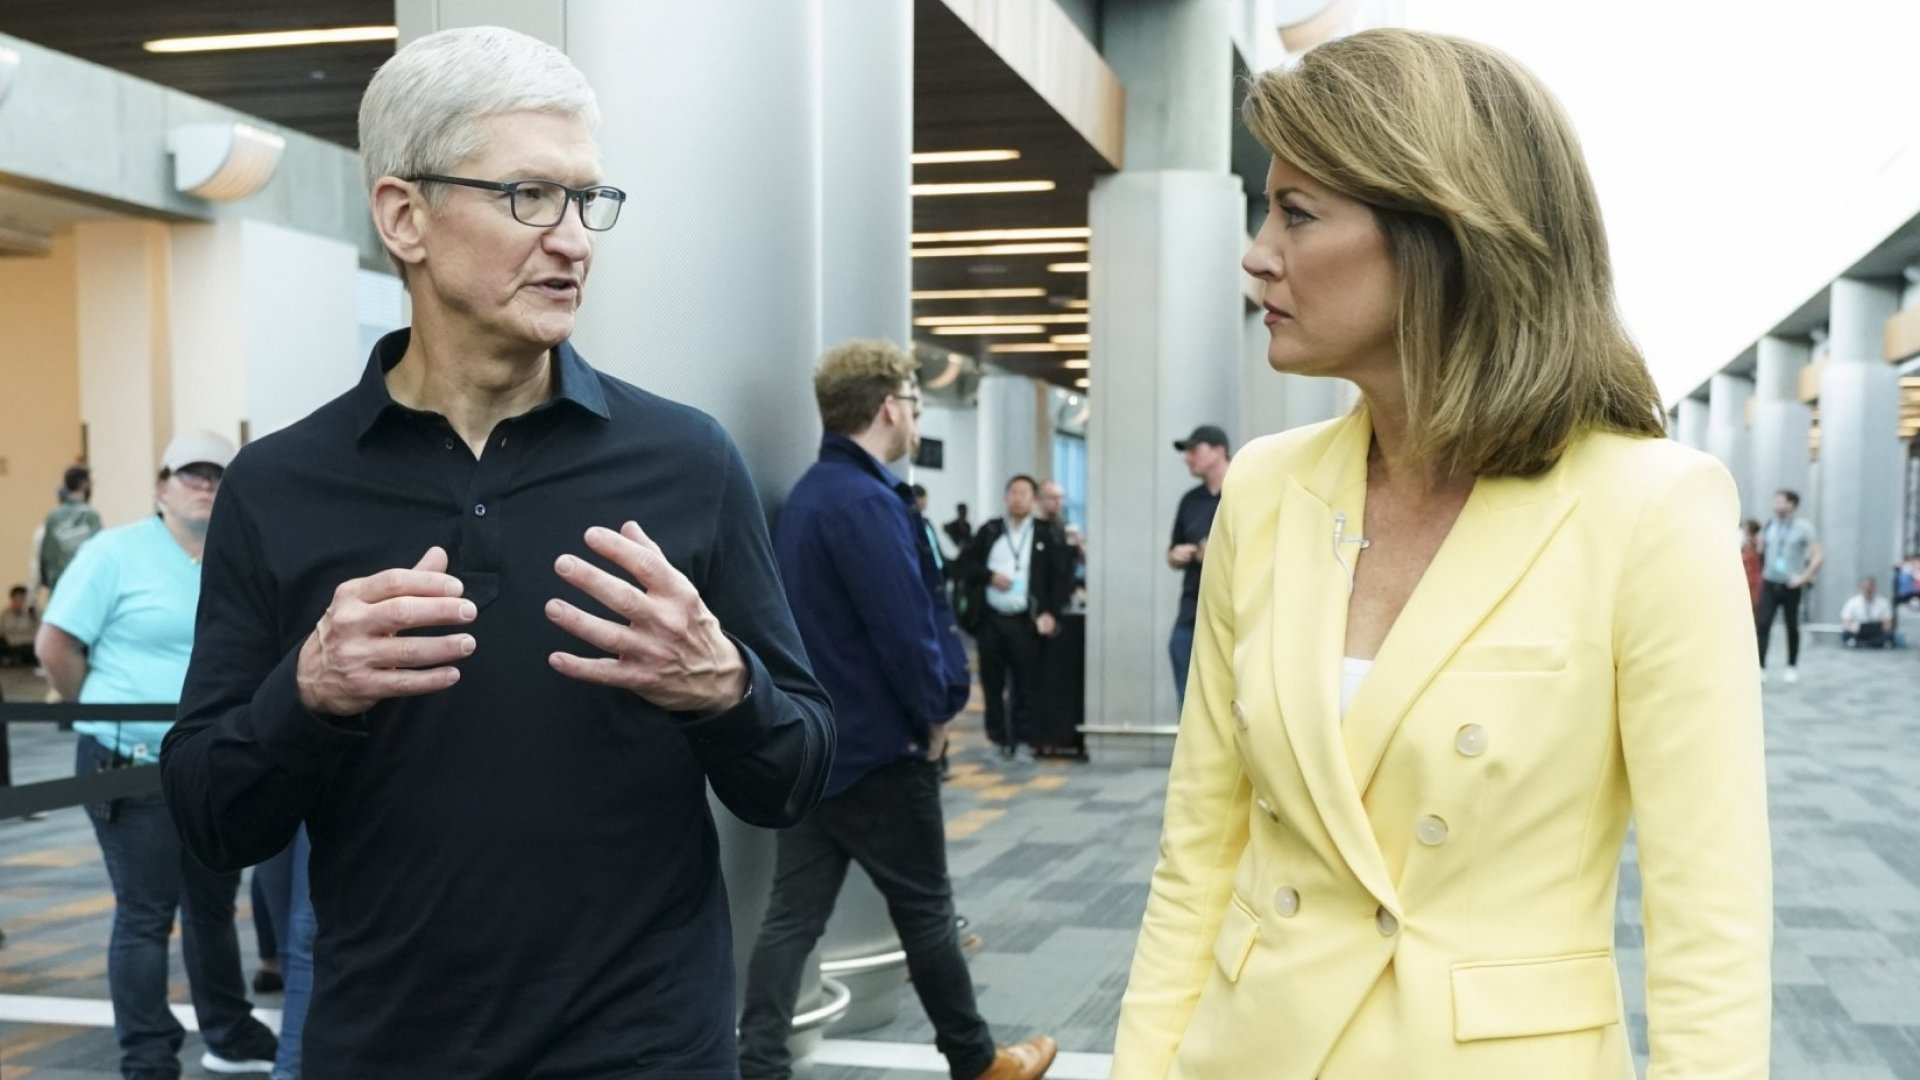 Apple CEO Tim Cook with CBS reporter Norah O'Donnell at the 2019 Worldwide Developers Conference in San Jose, California.